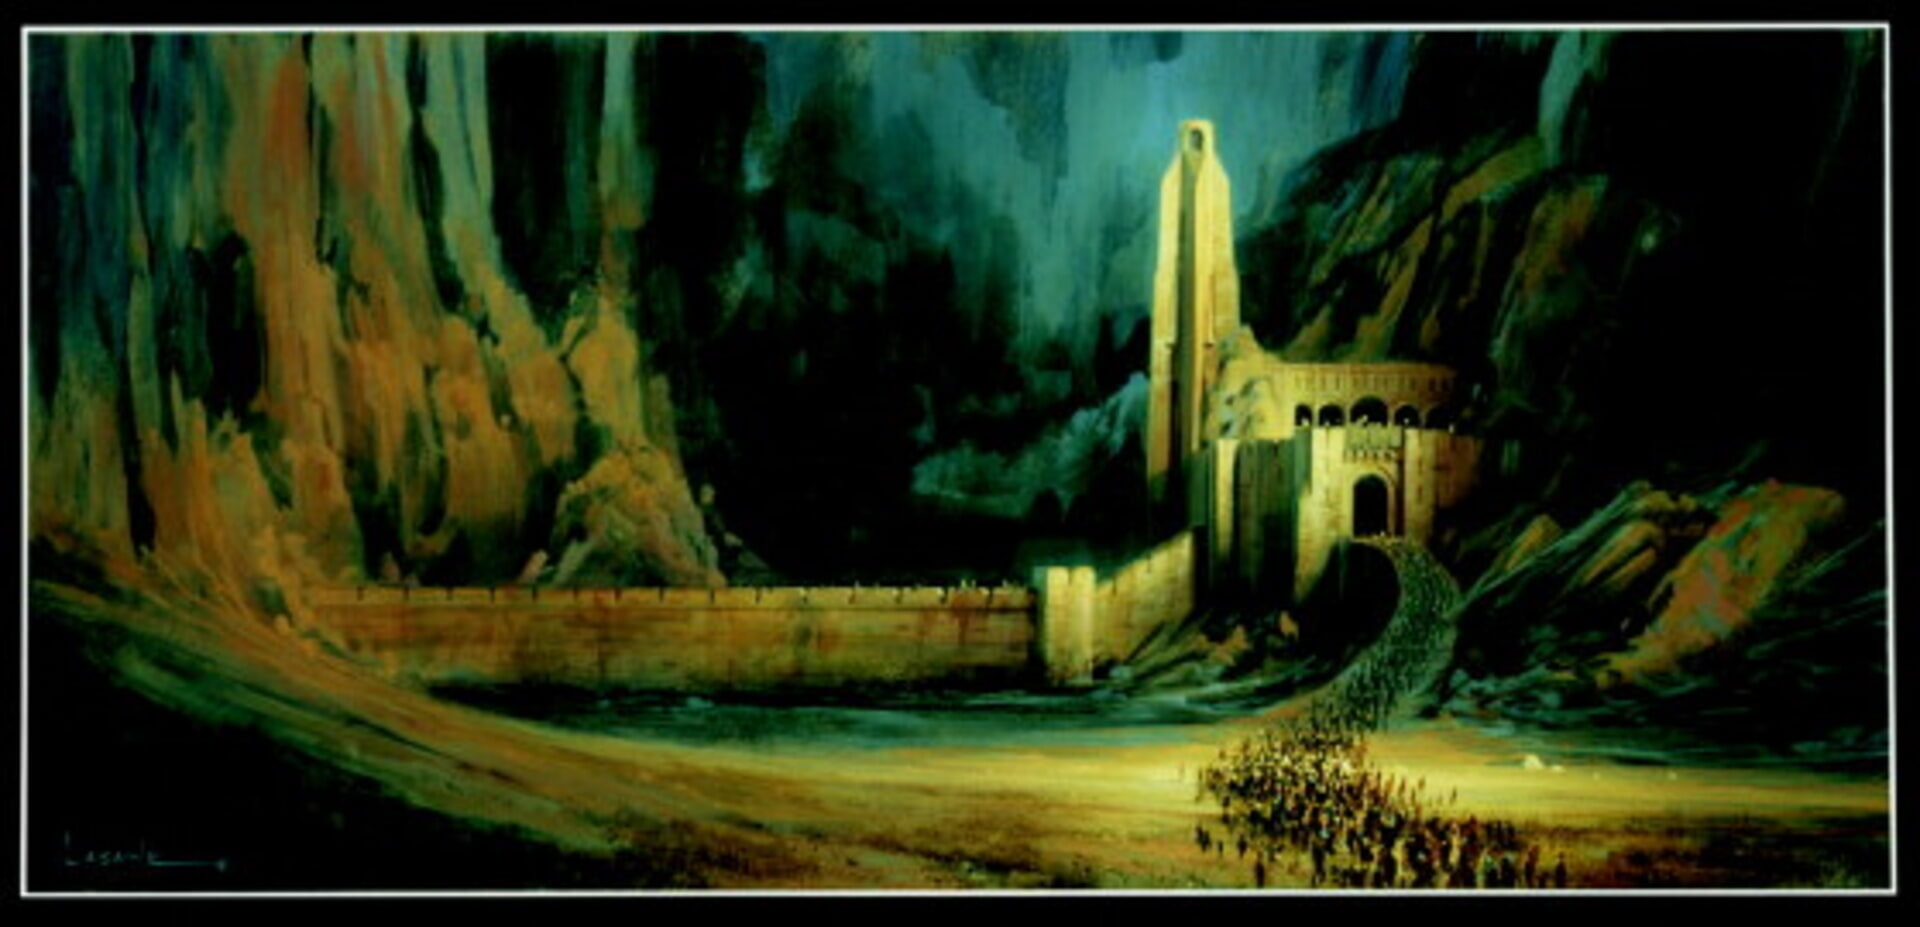 The Lord of the Rings: The Two Towers - Image 21